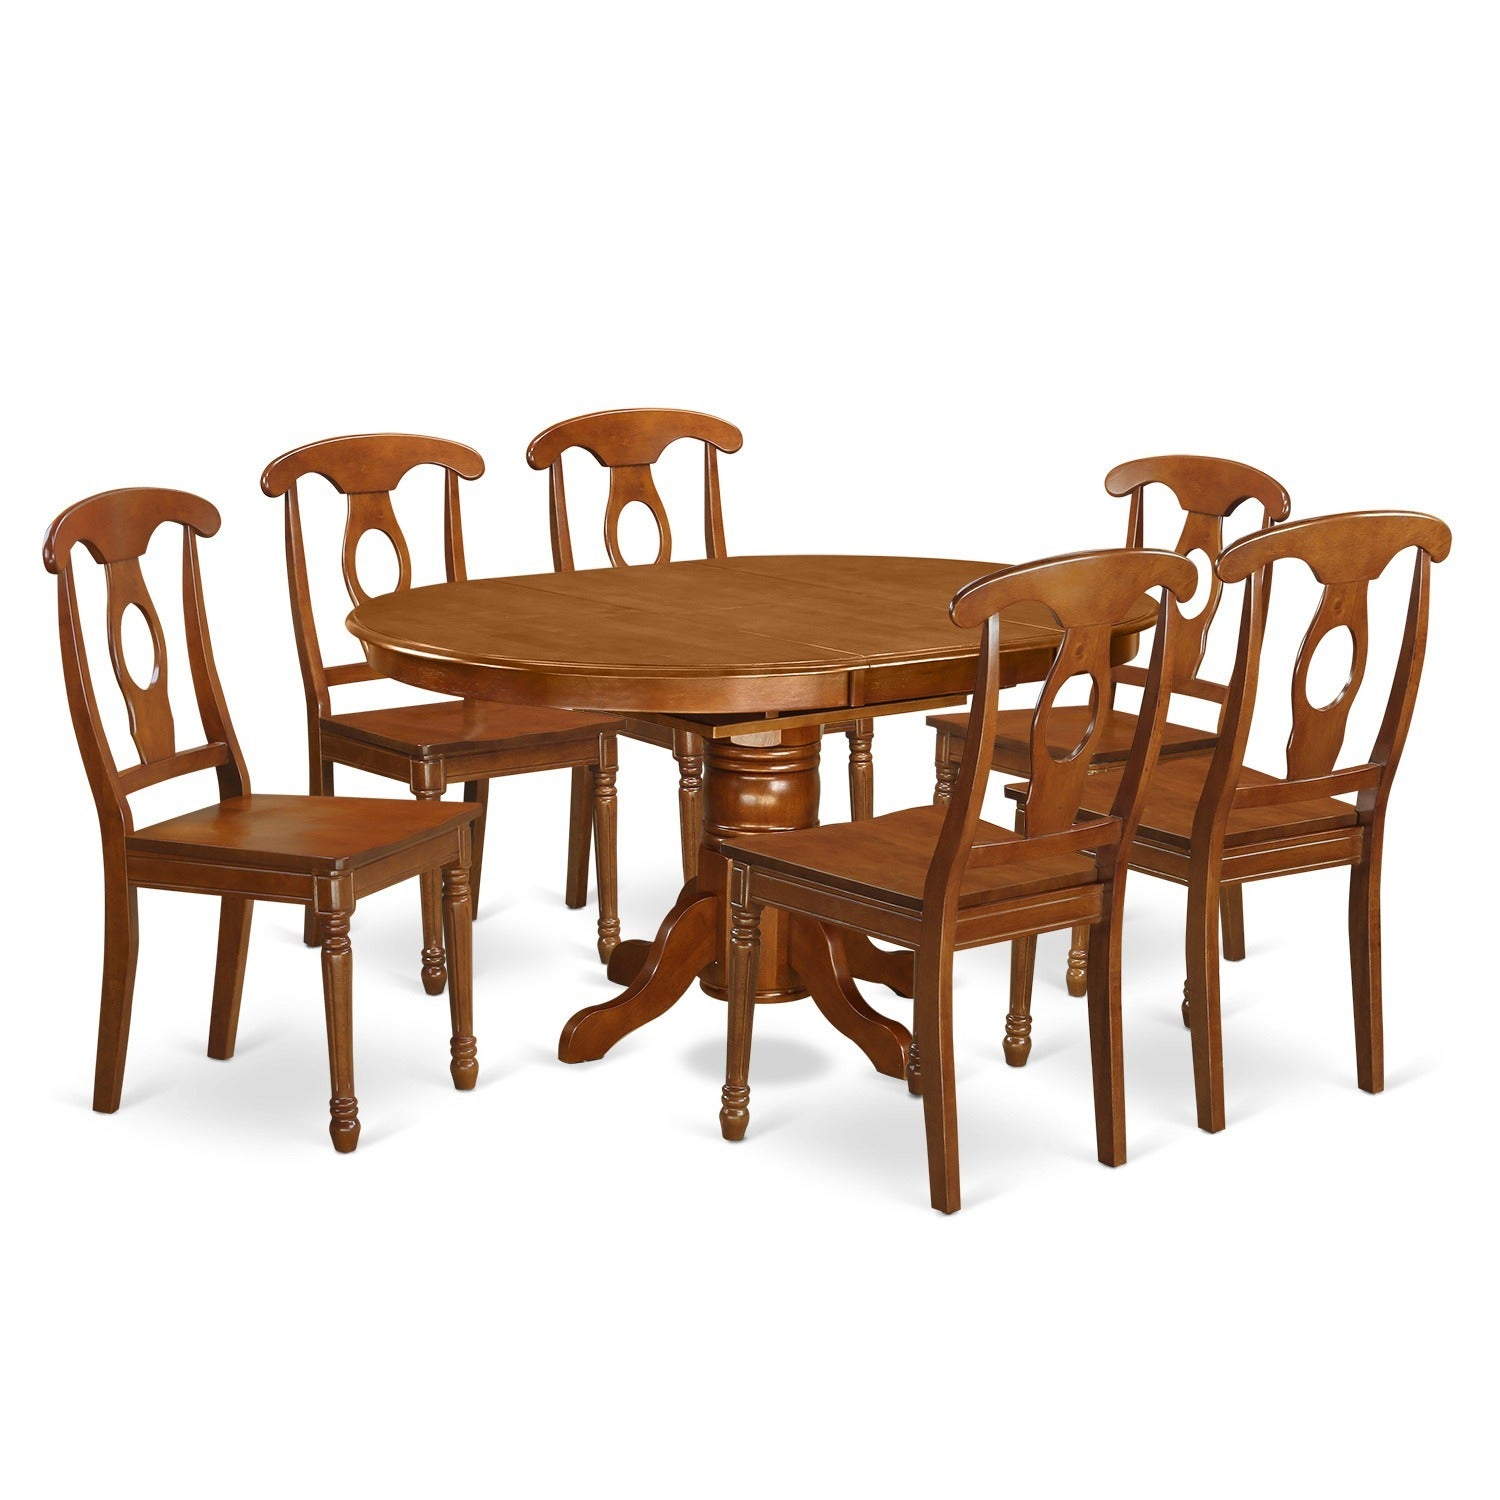 7 piece dining room table with leaf and 6 dining chairs free shipping today overstock 17410194